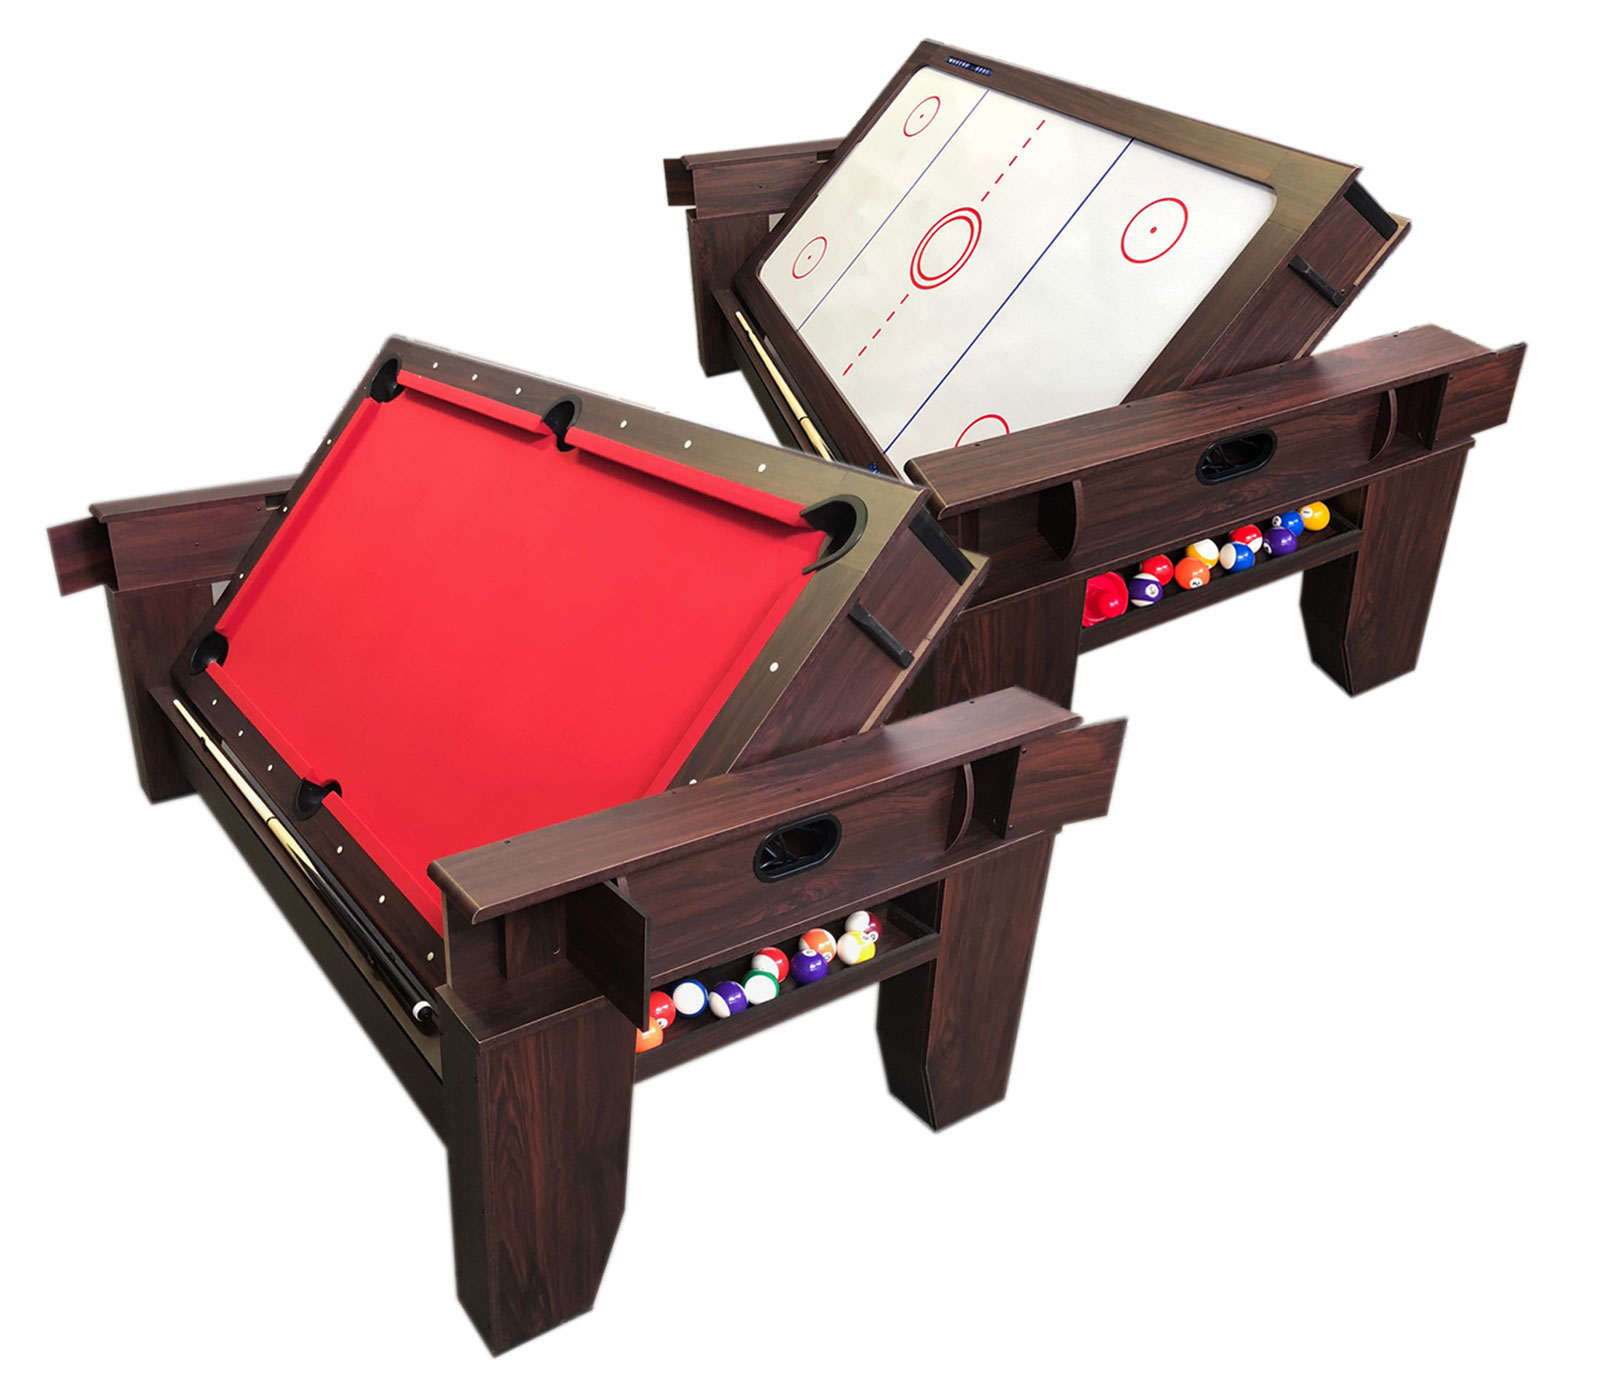 Details About 2 In 1   7Ft Red Pool Table Billiard Become An Air Hockey  Table With Accessories